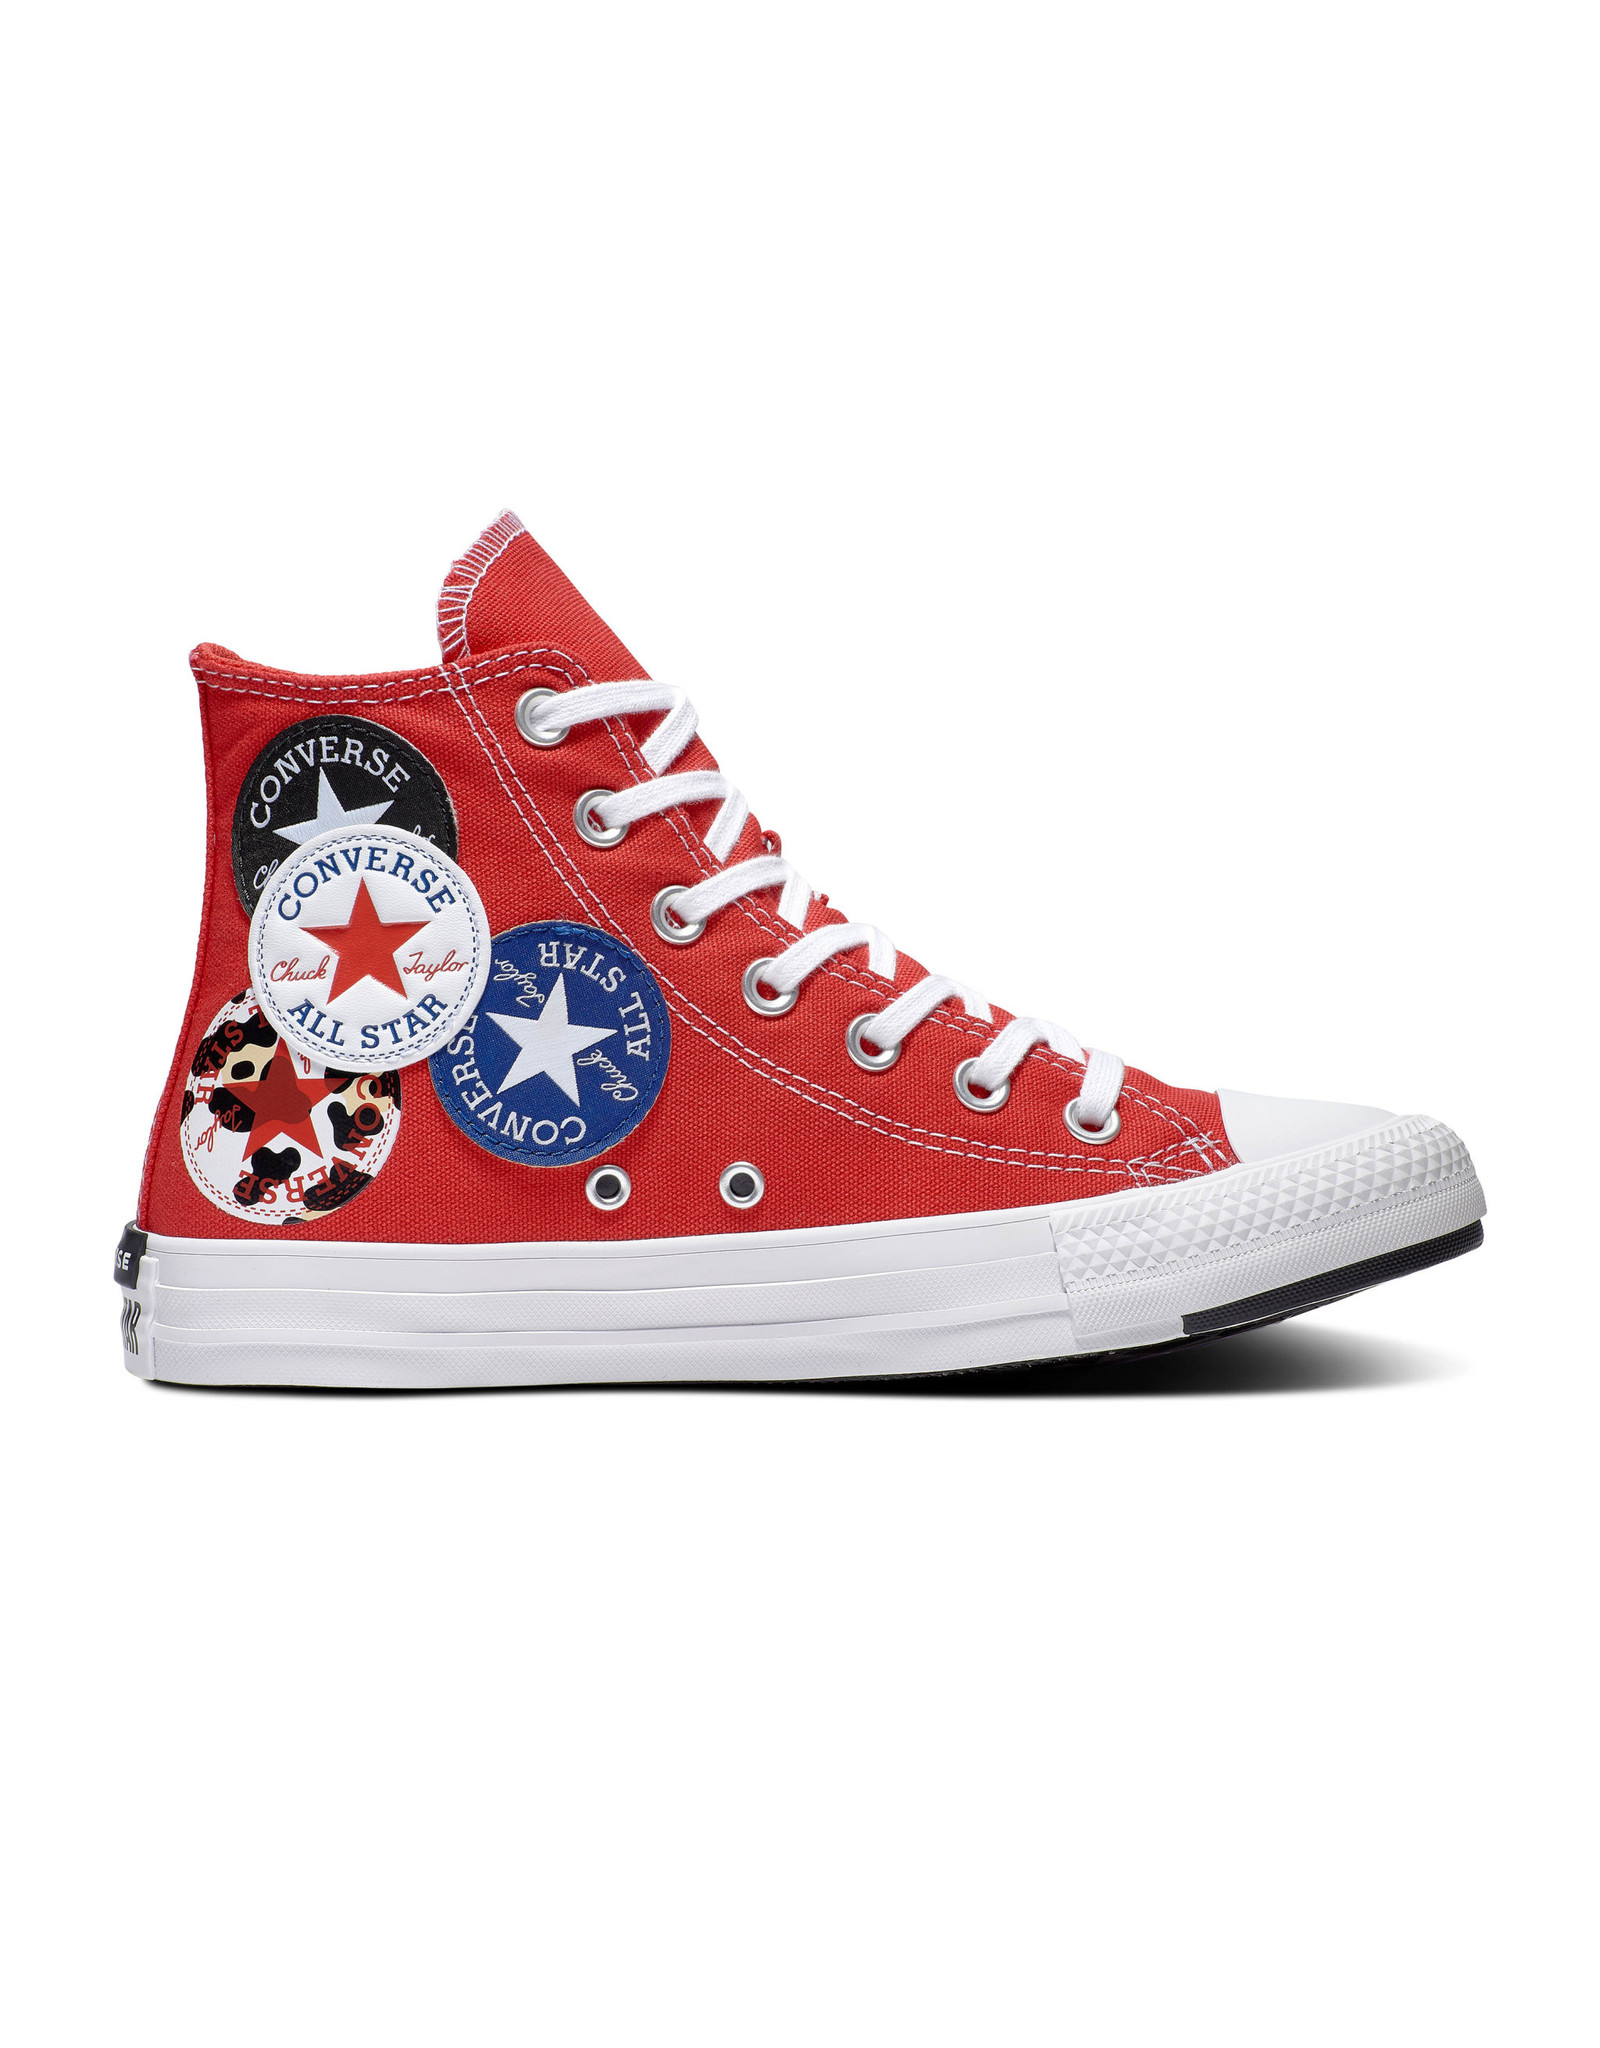 CONVERSE CHUCK TAYLOR ALL STAR  HI UNIVERSITY RED/BLACK/RUSH BLUE C20LOR-166736C